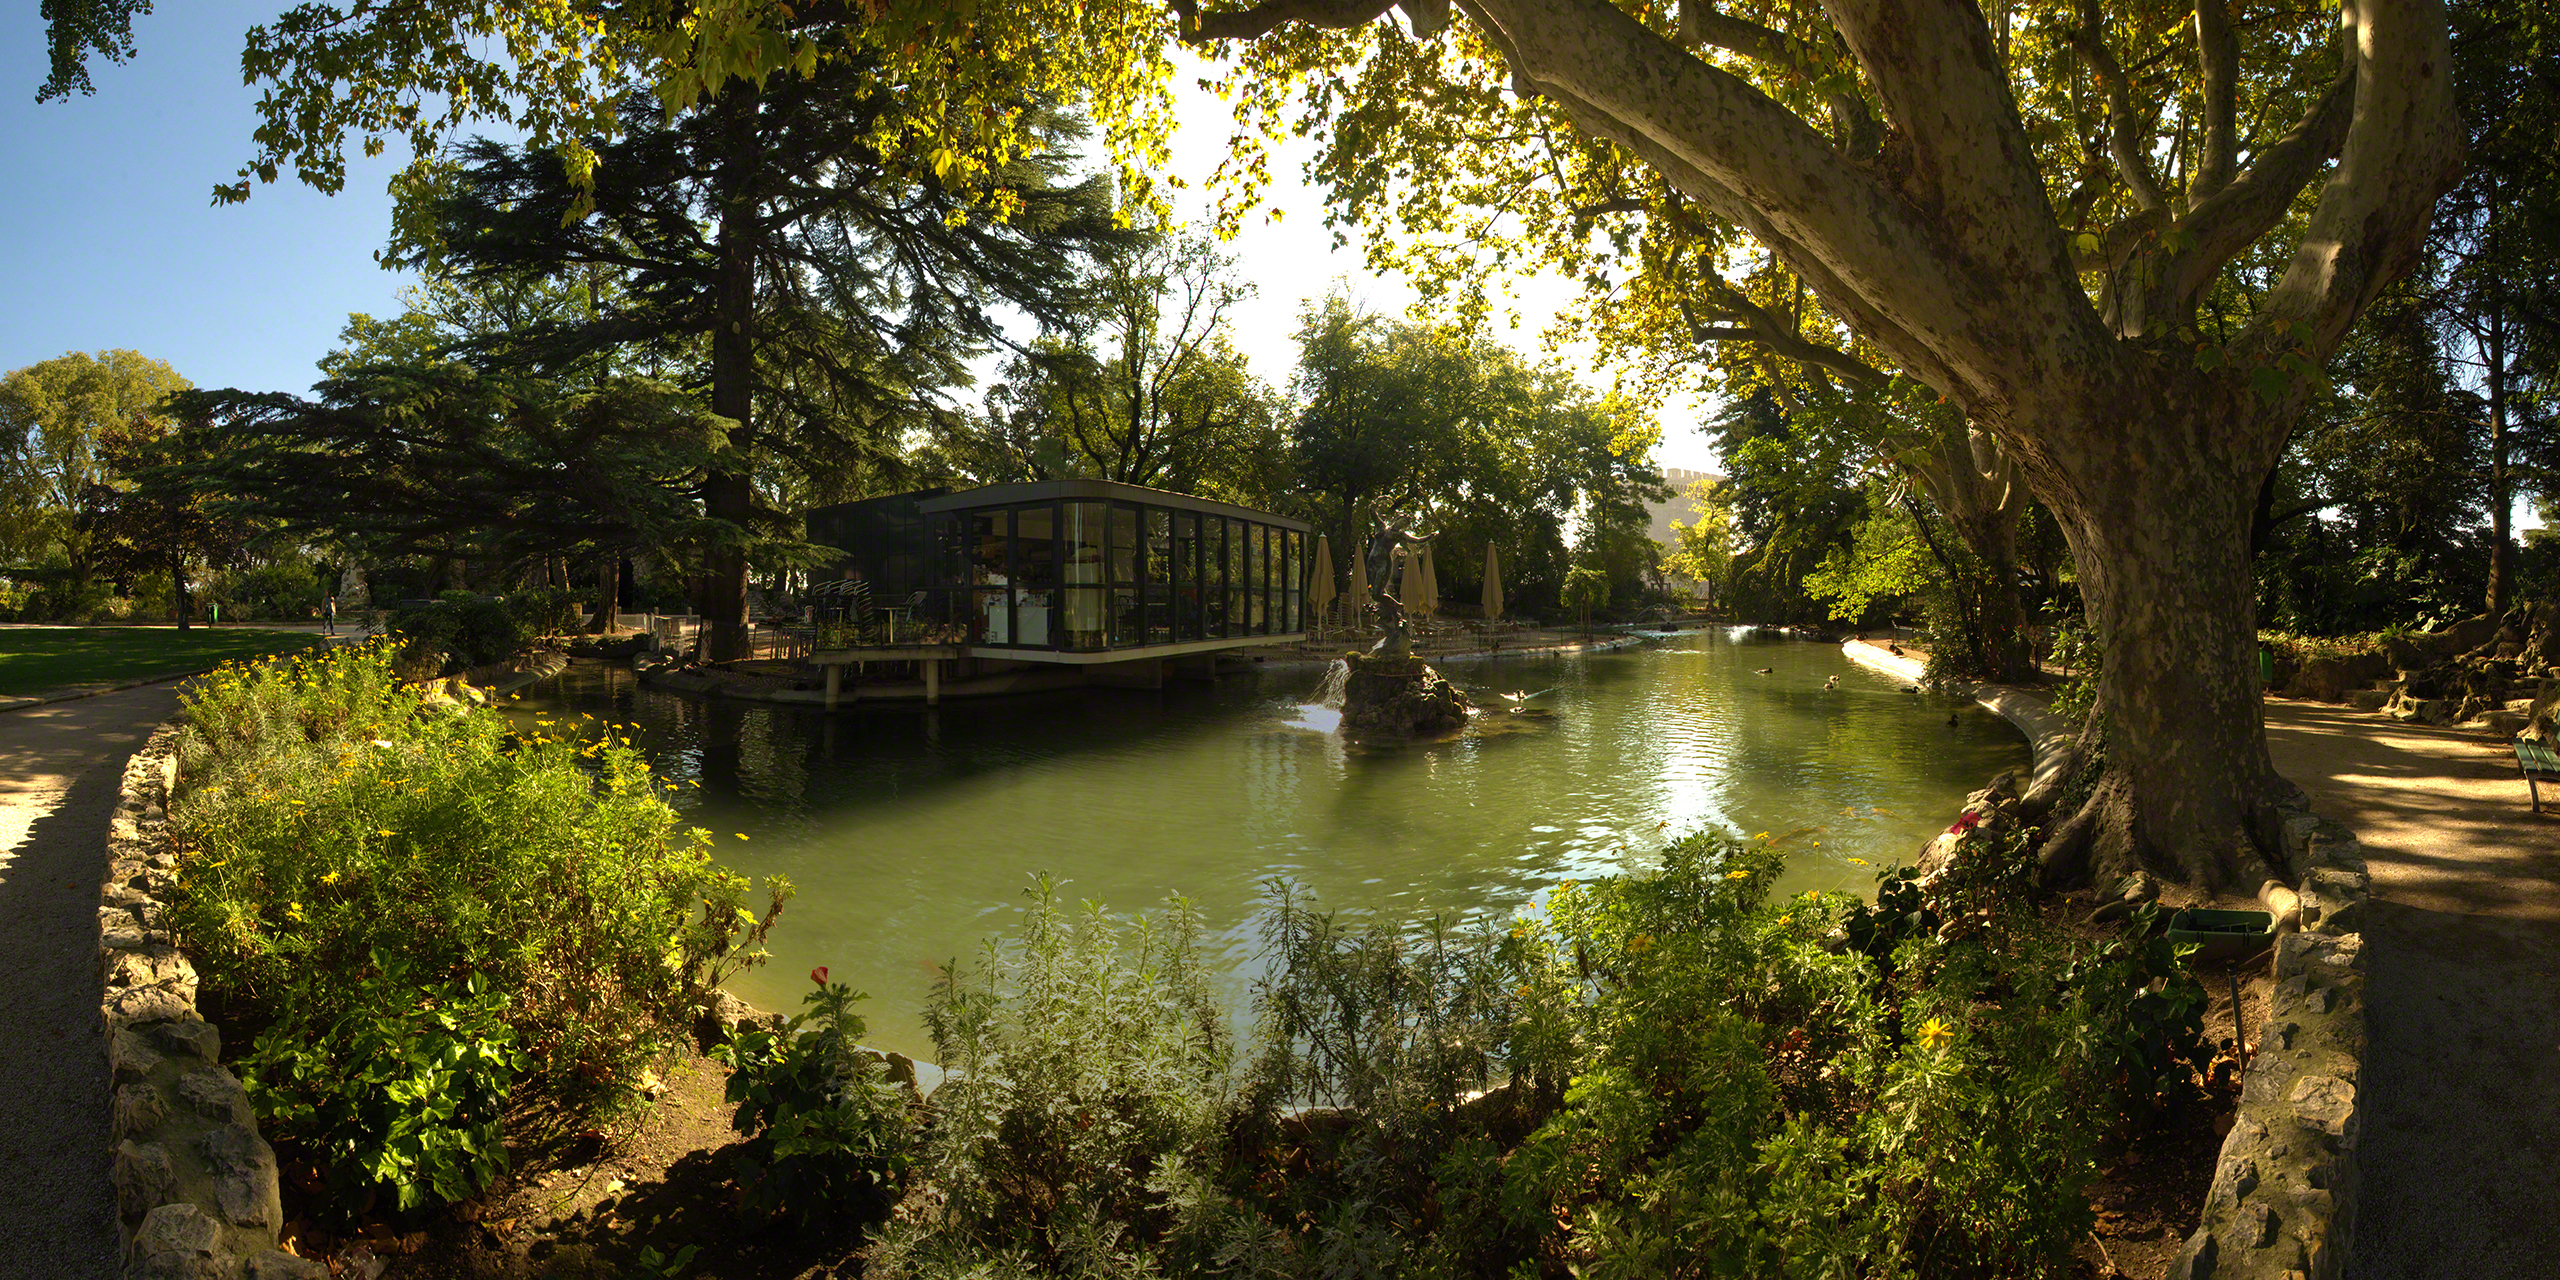 lake near the palais des papes, avignon, France